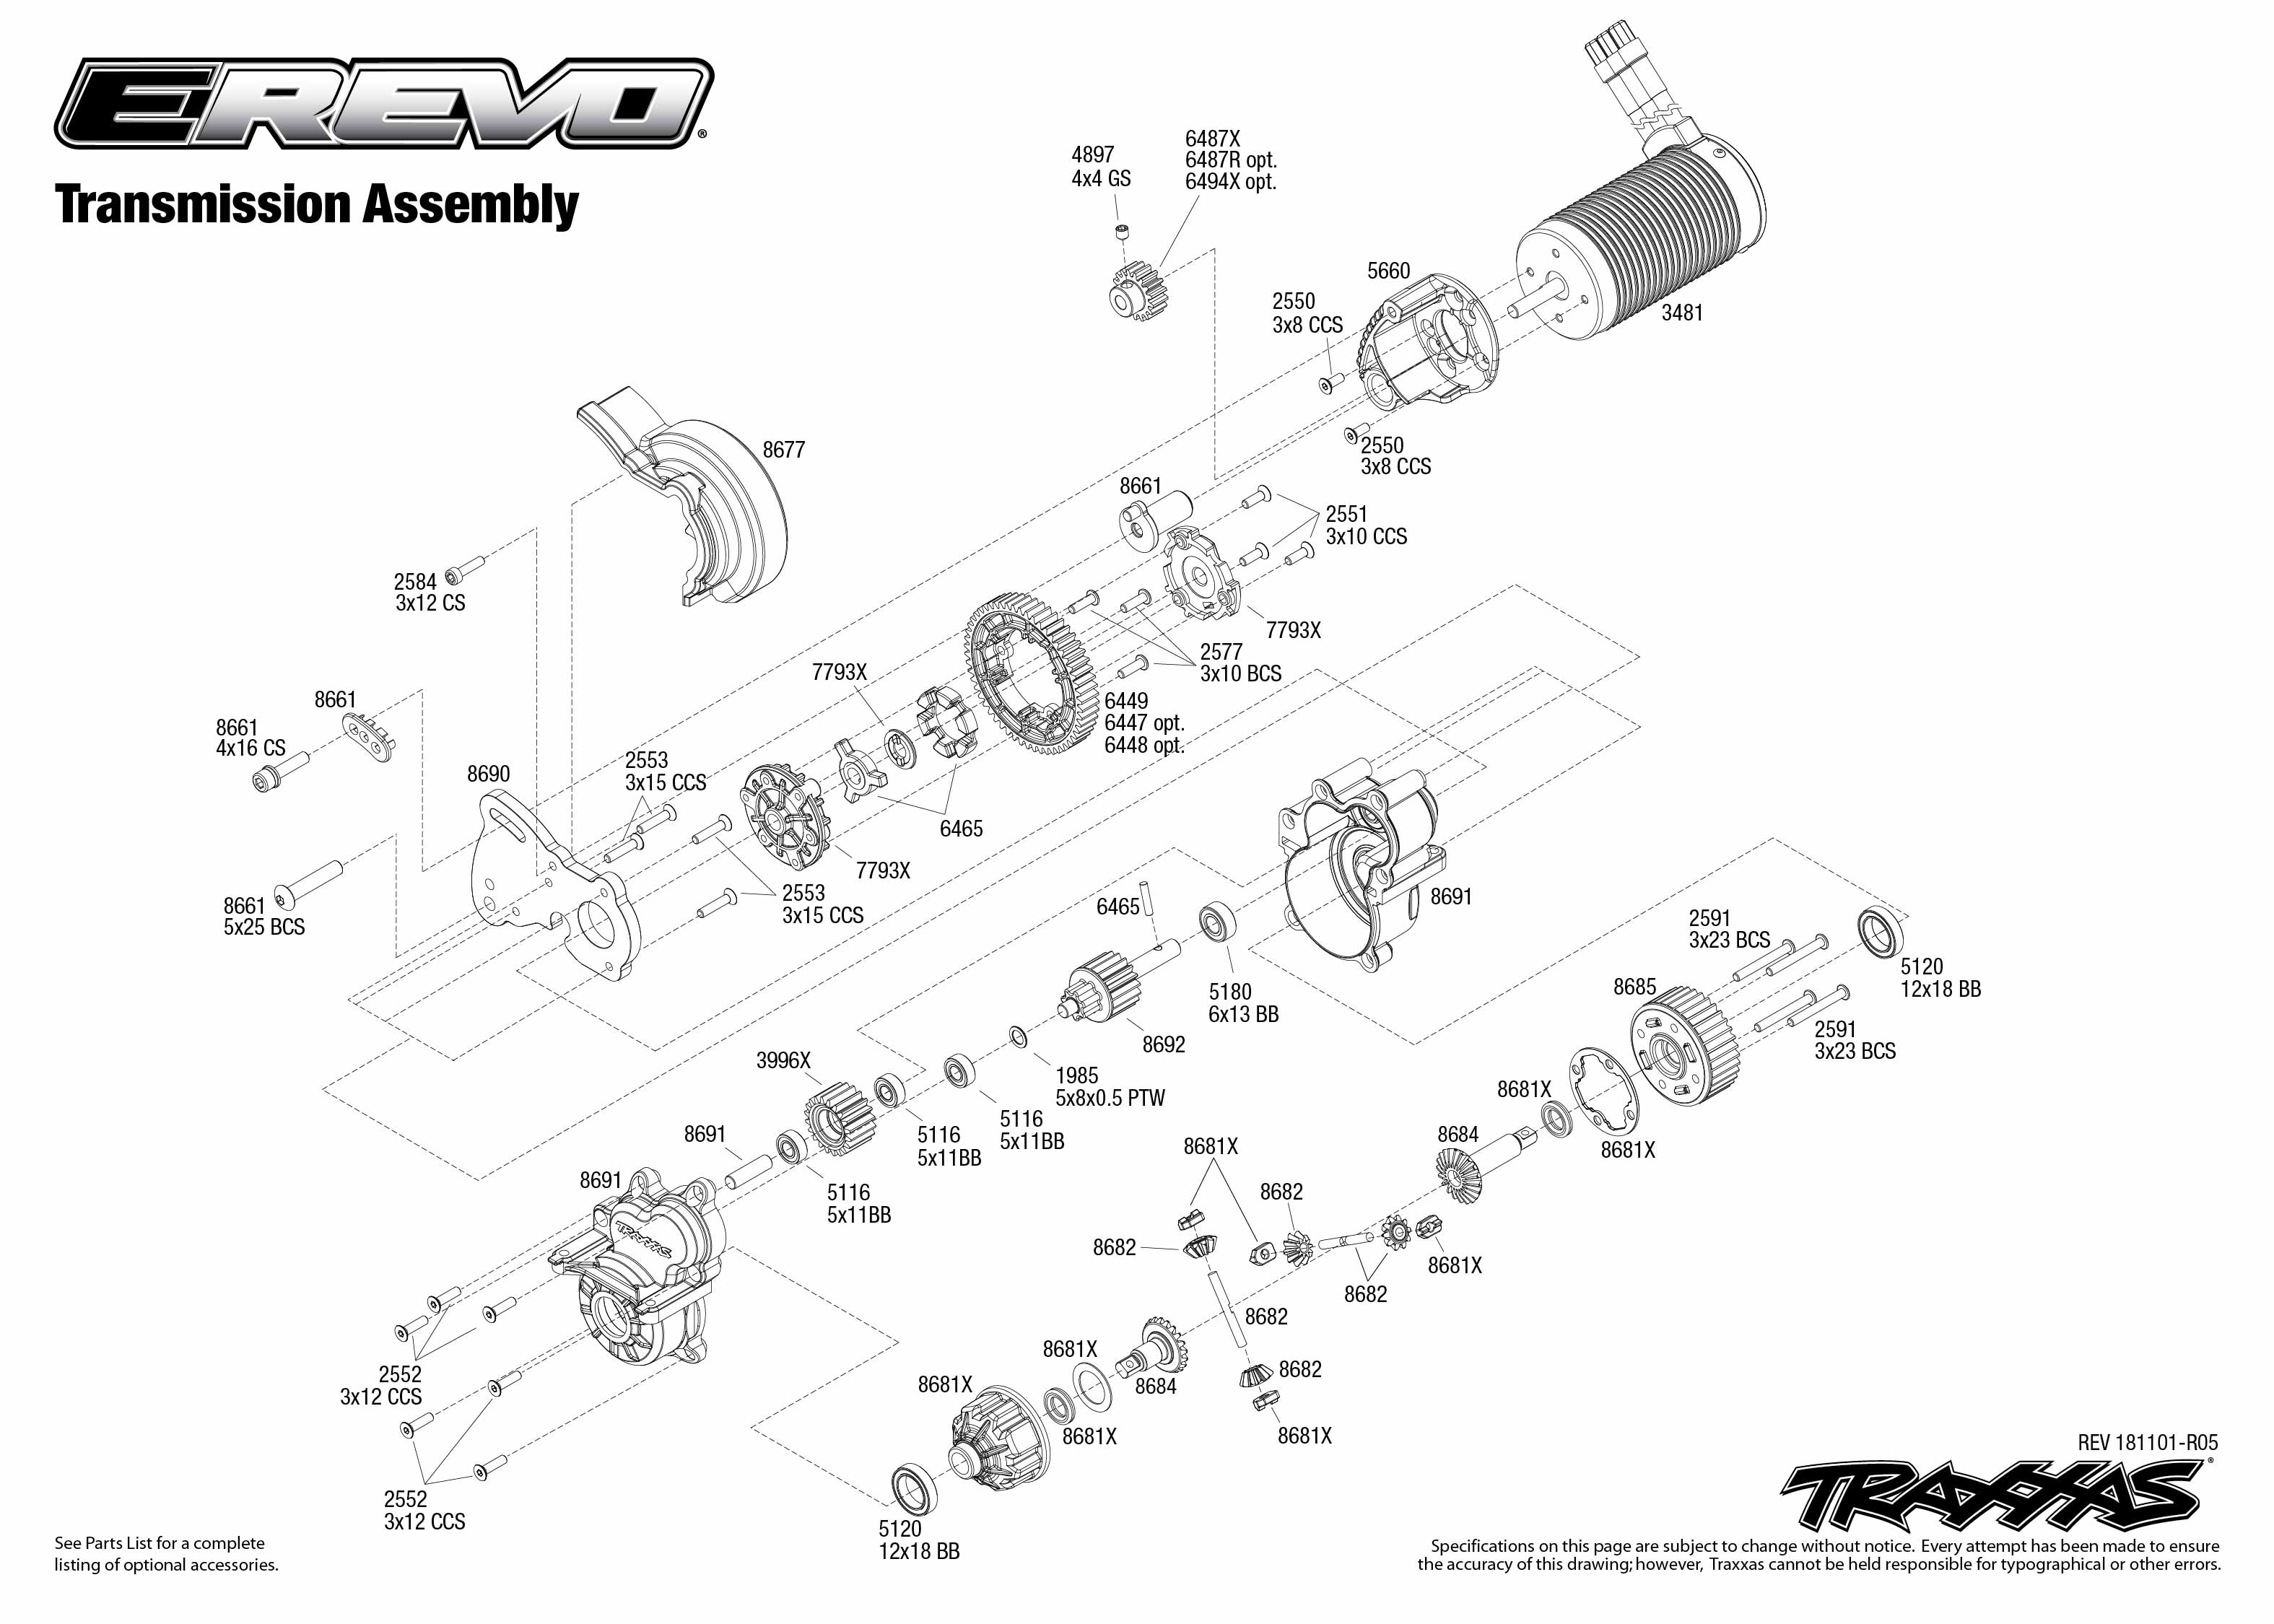 Traxxas Revo Wire Diagram 25 Wiring Images Jada Rc Car 86086 4 E Brushless Waterproof Exploded Views 181101 Transmission Assembly Parts